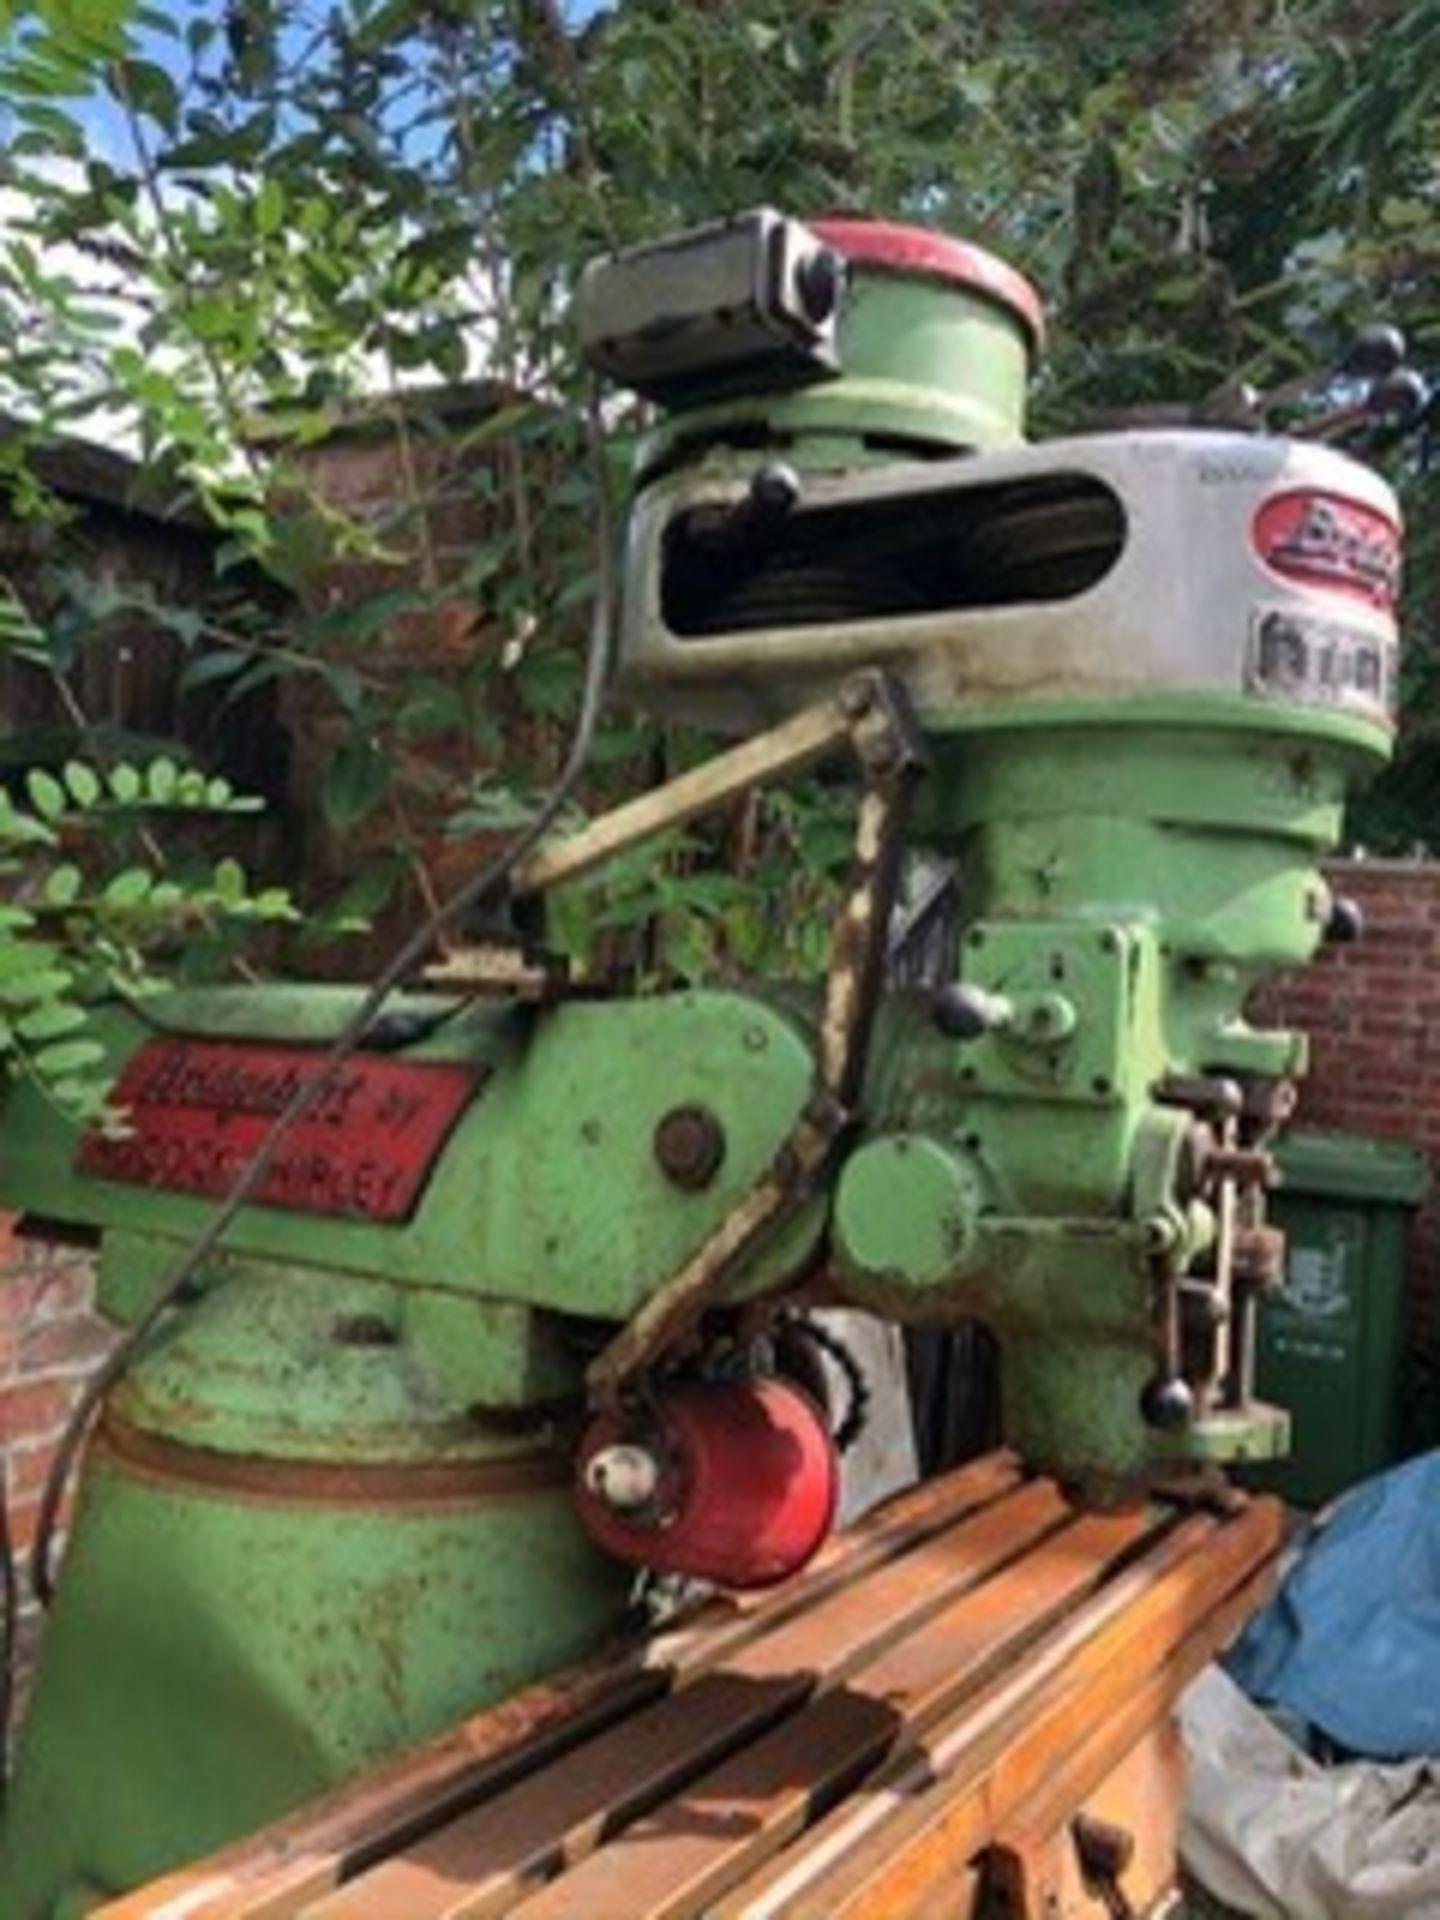 Lot 37 - Bridgeport milling machine. Unknown if working, not tested.